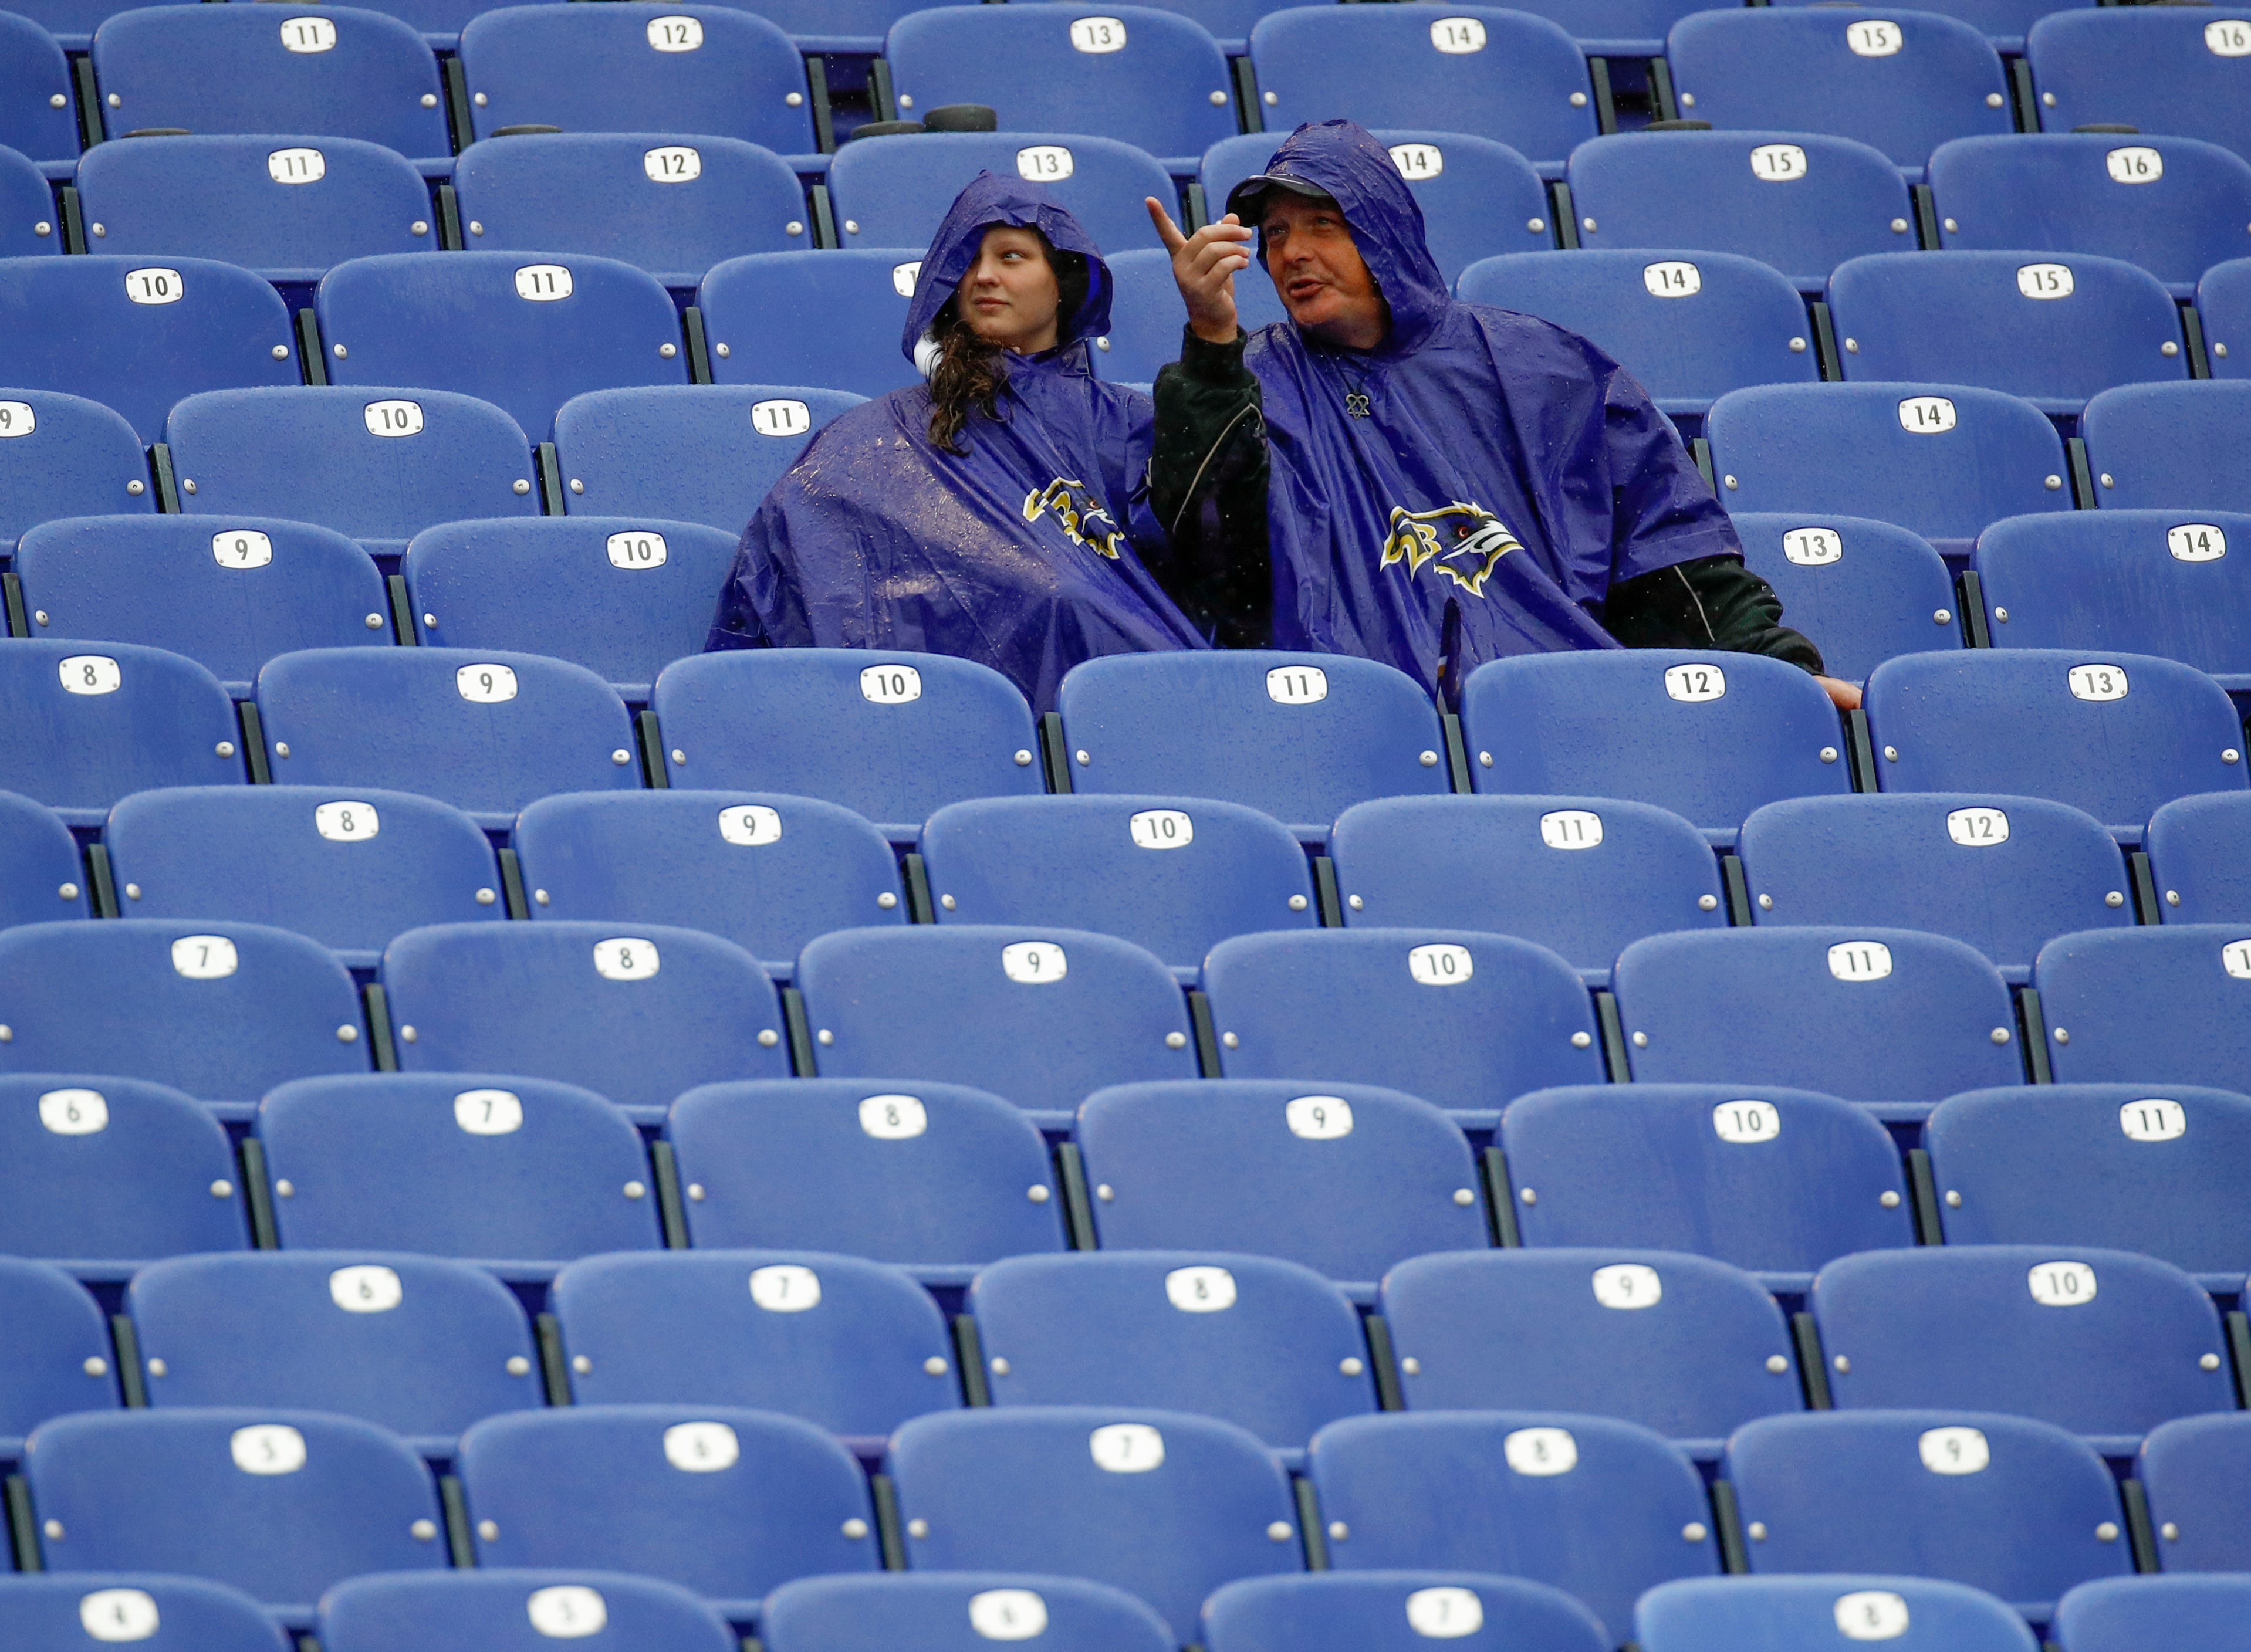 Baltimore Ravens fans watch team warm ups during a rain storm before the NFL football game between the Baltimore Ravens and the Buffalo Bills, Sunday, Sept. 9, 2018 in Baltimore. (AP Photo/Patrick Semansky)